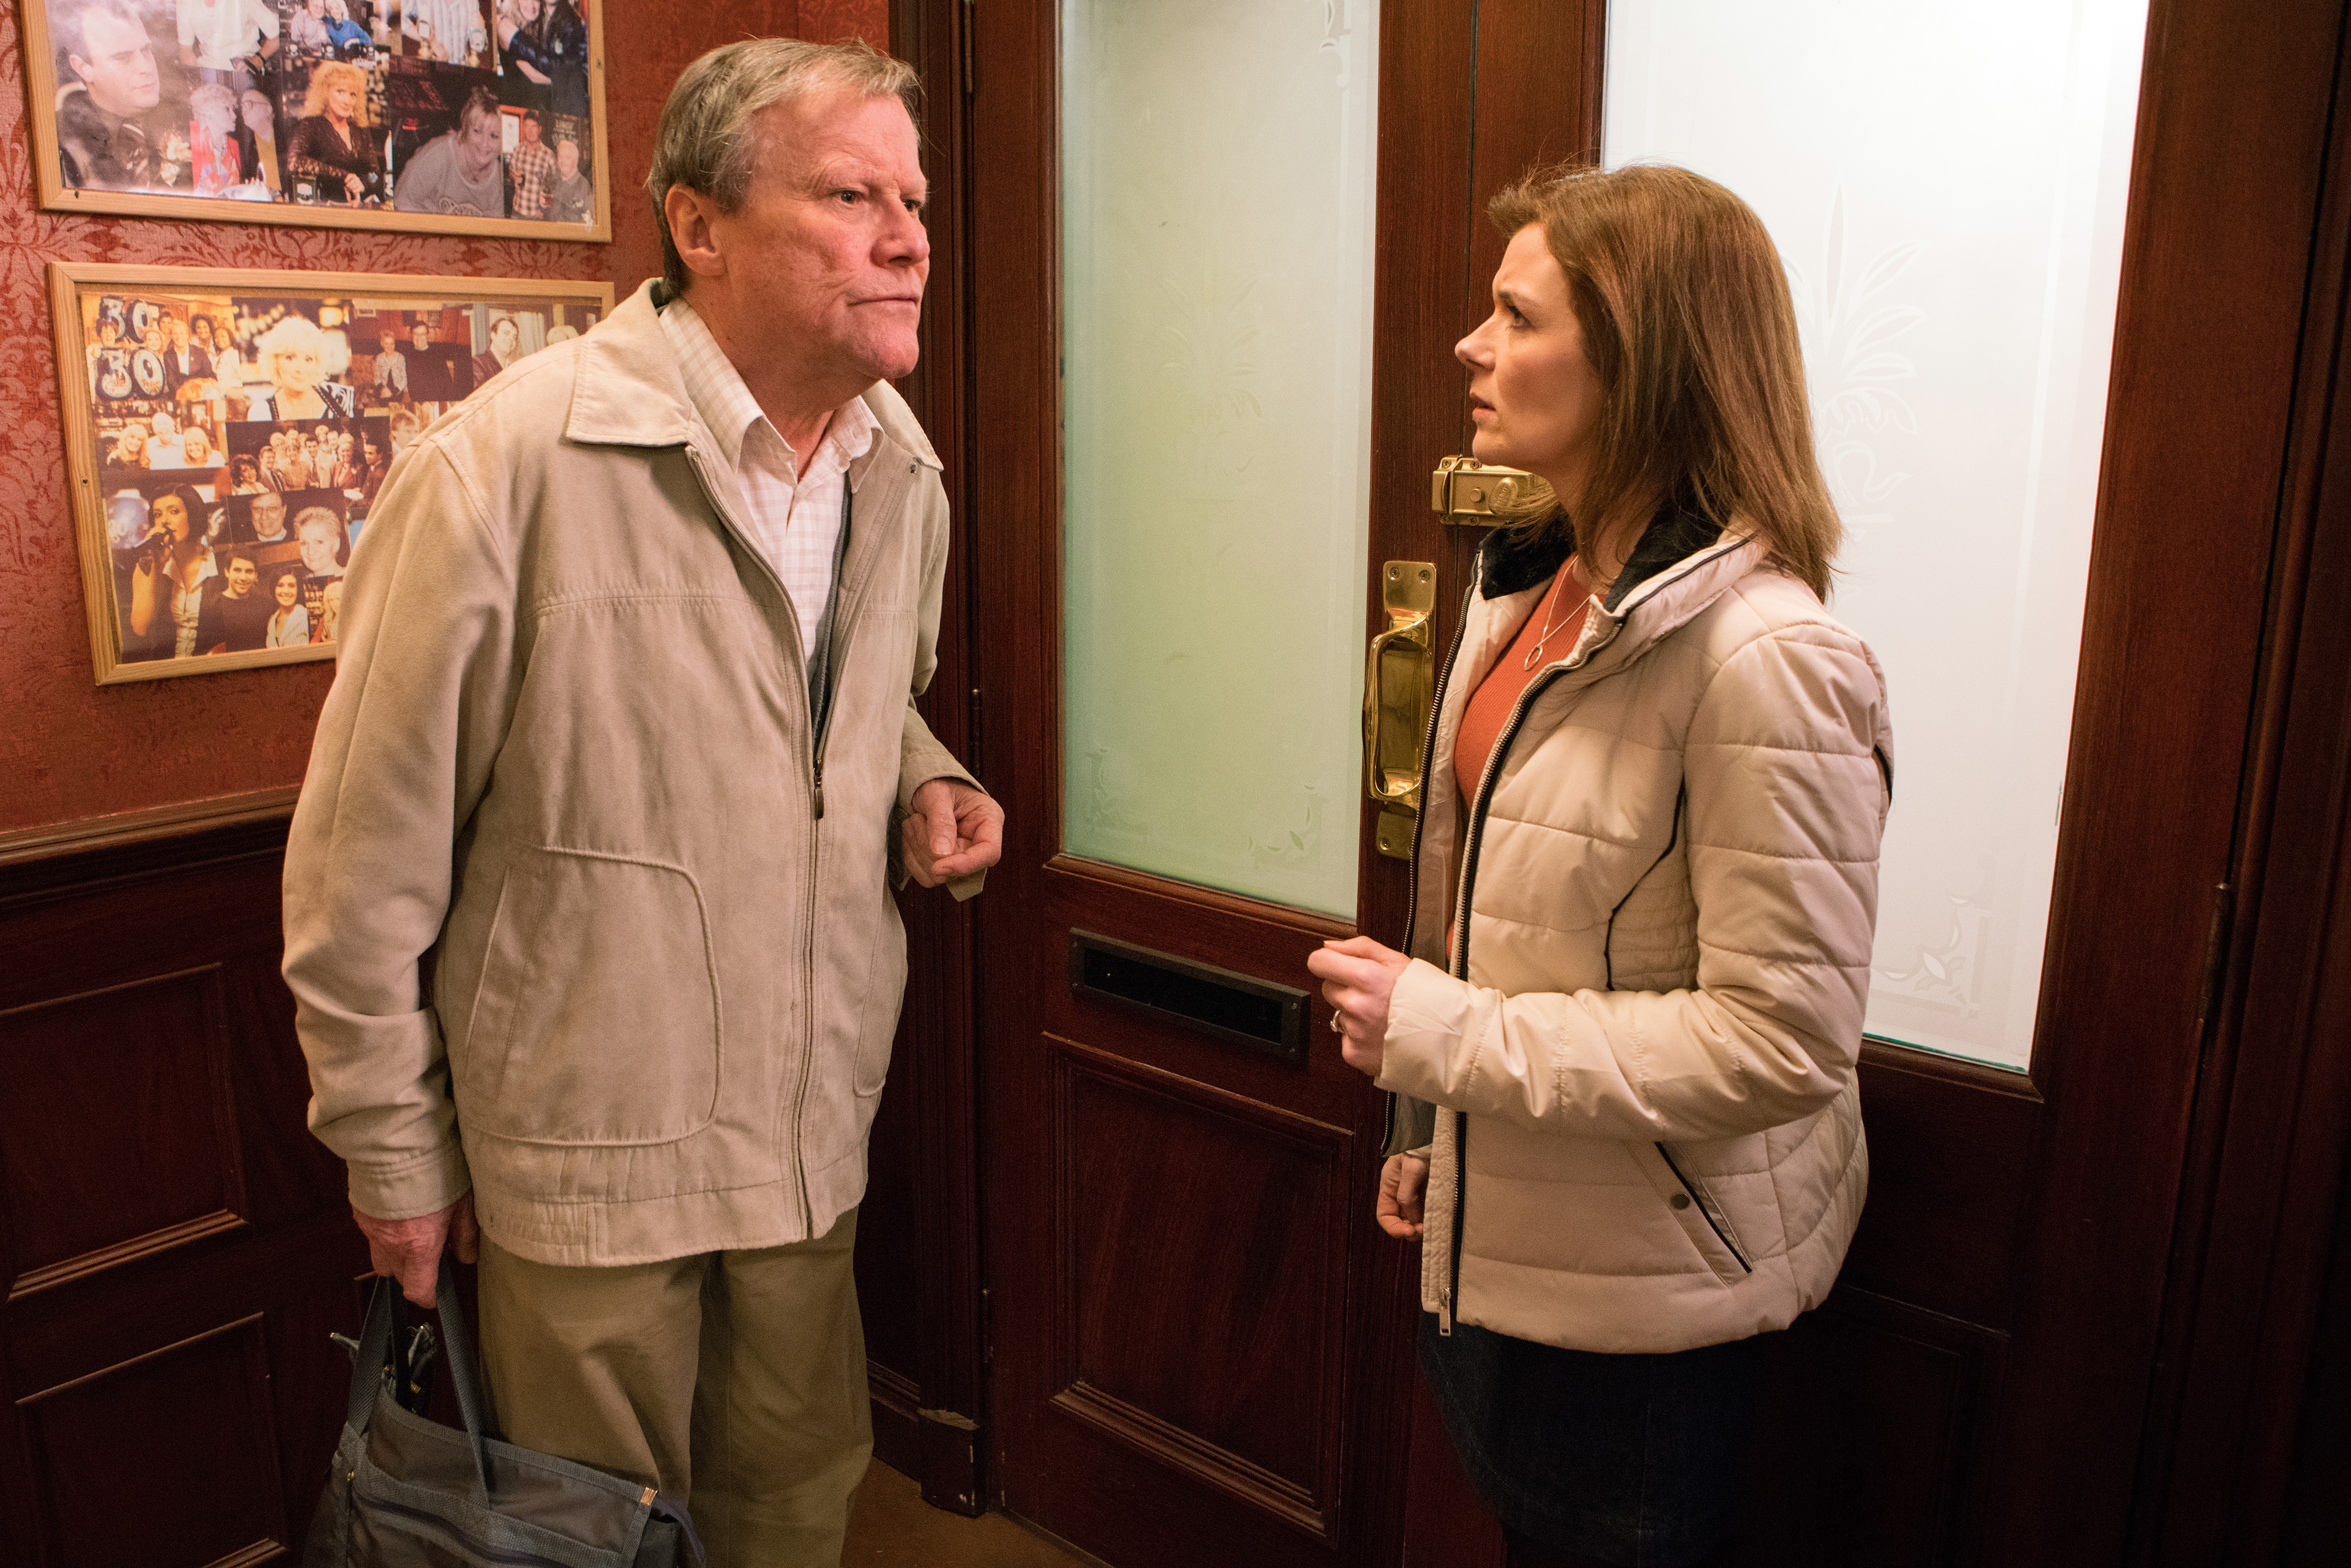 Roy has bad news for Leanne in Coronation Street